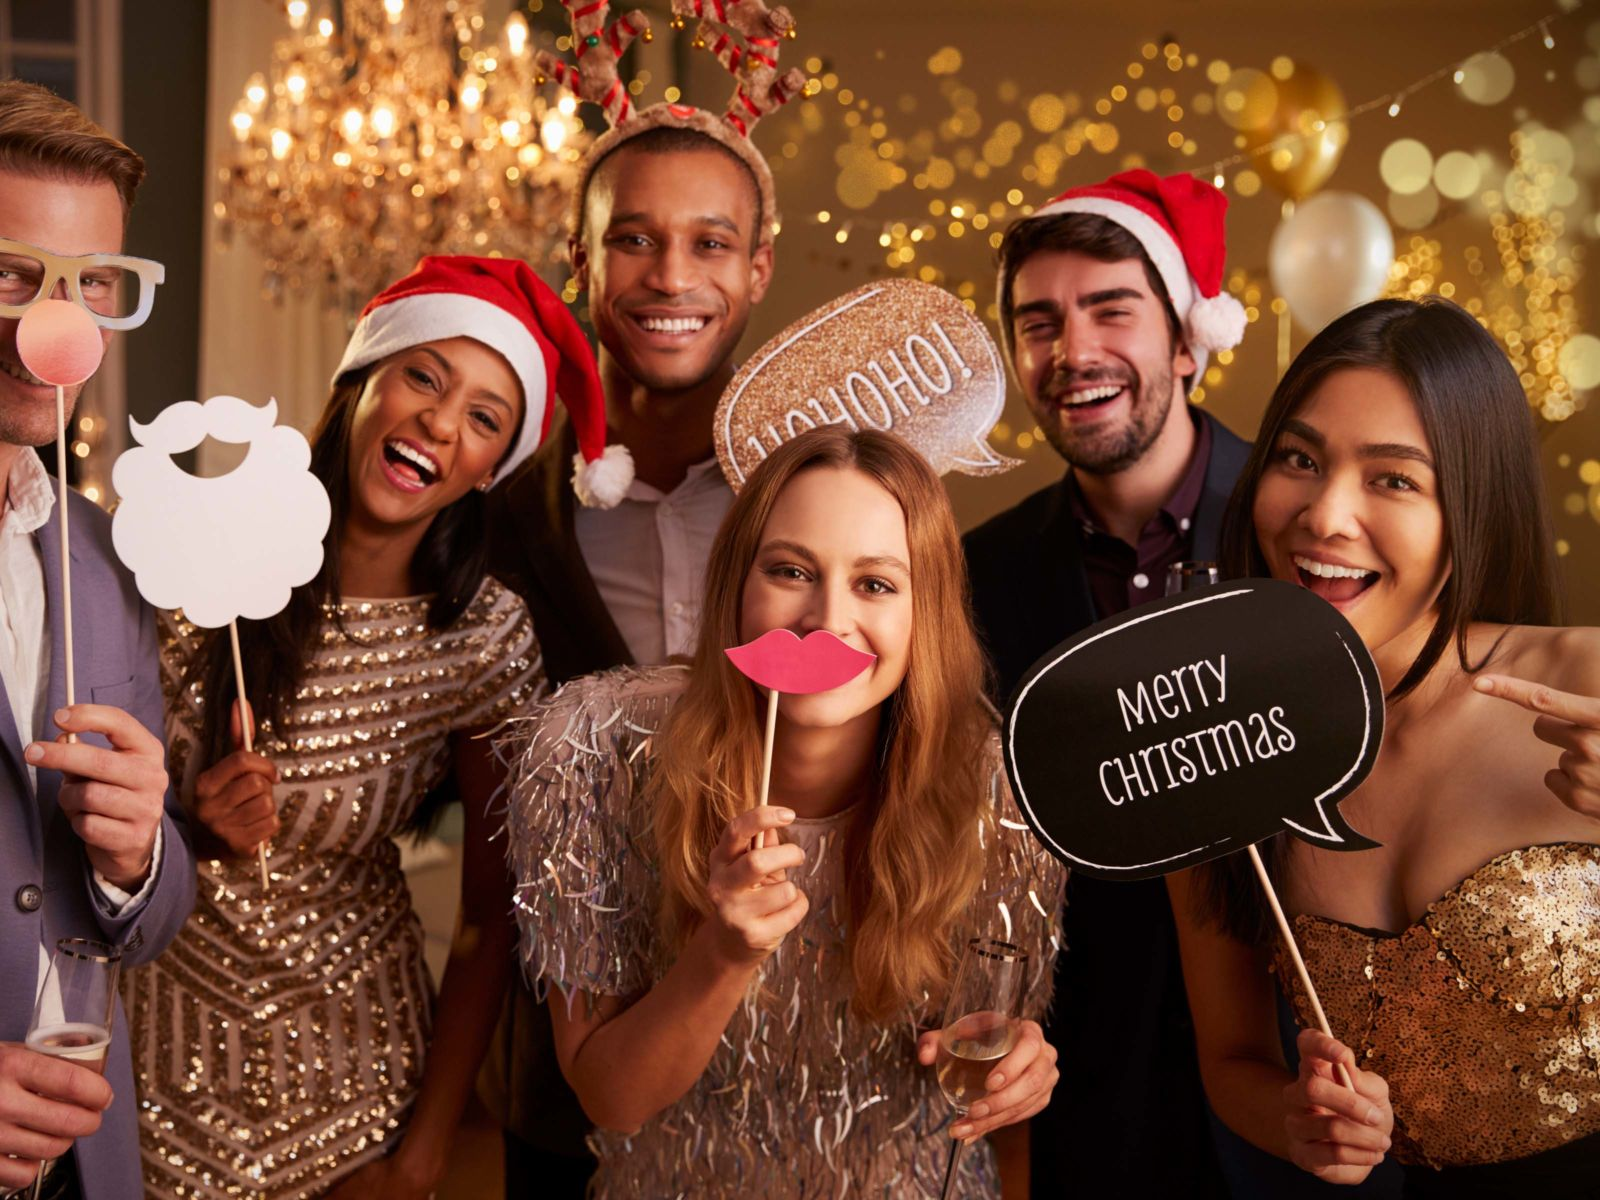 Office Christmas Party Ideas In Bournemouth Shared Private